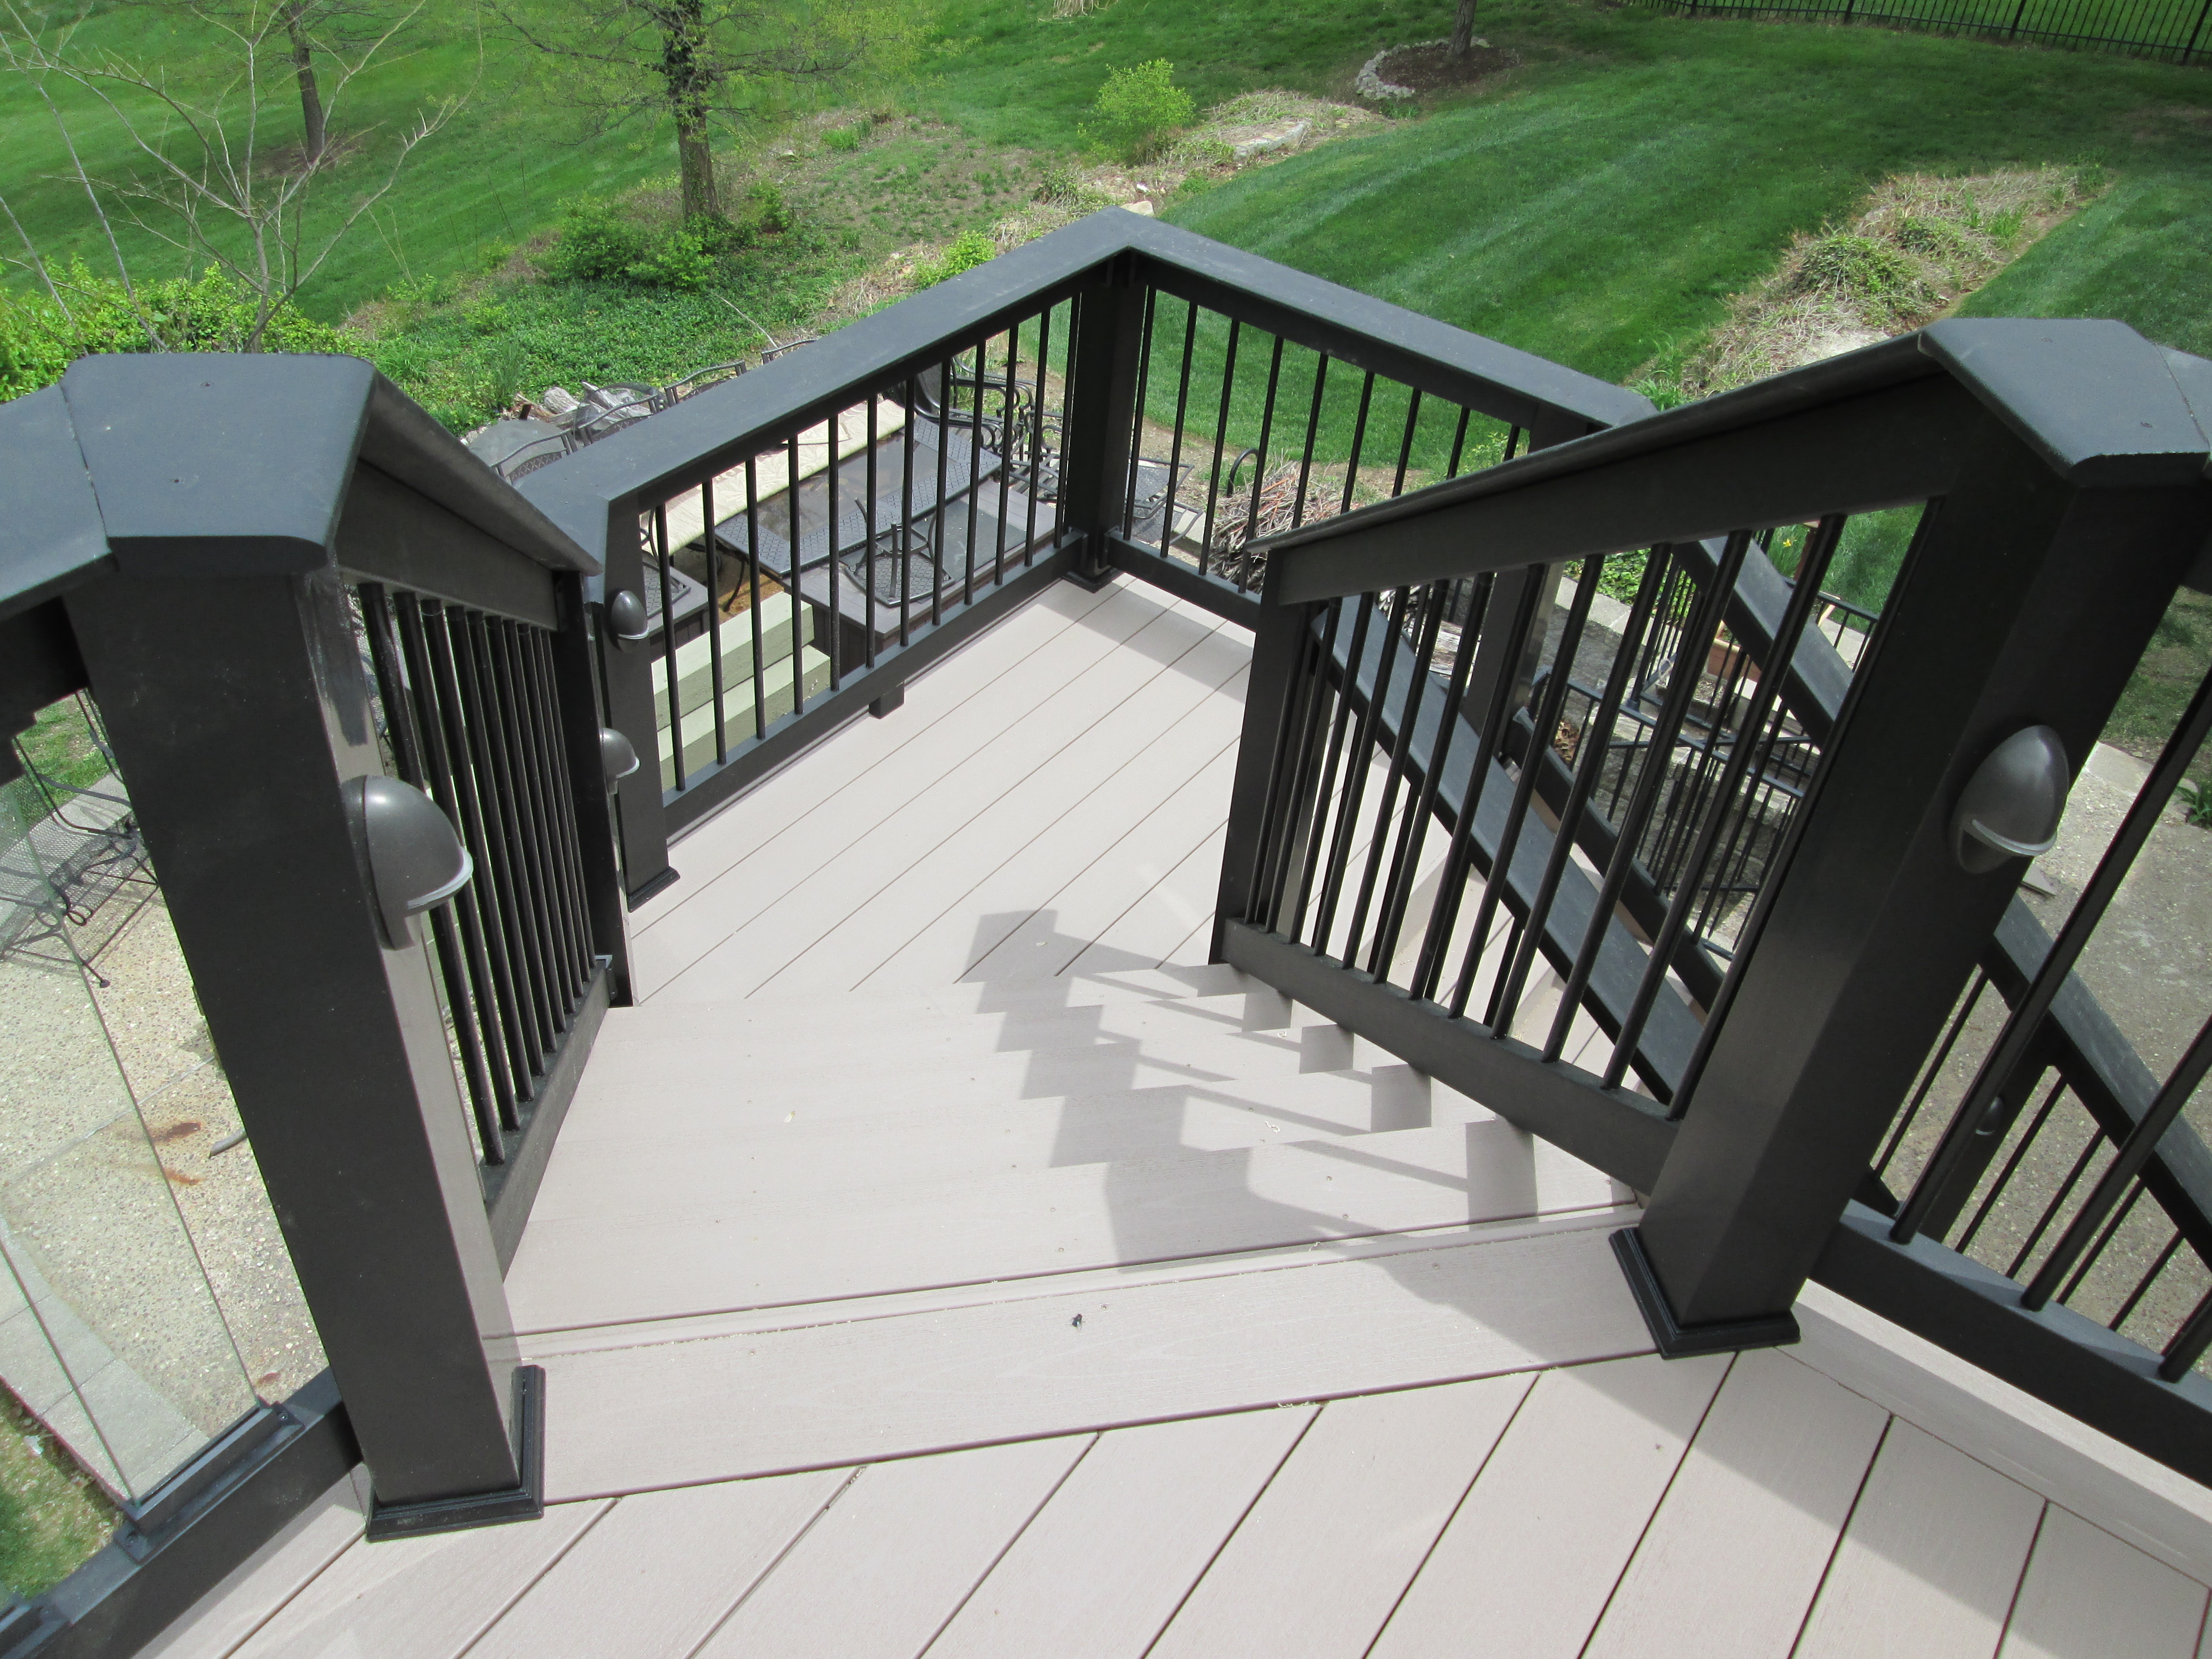 How To Add Lights To A Deck Screened Porch or Pergola by